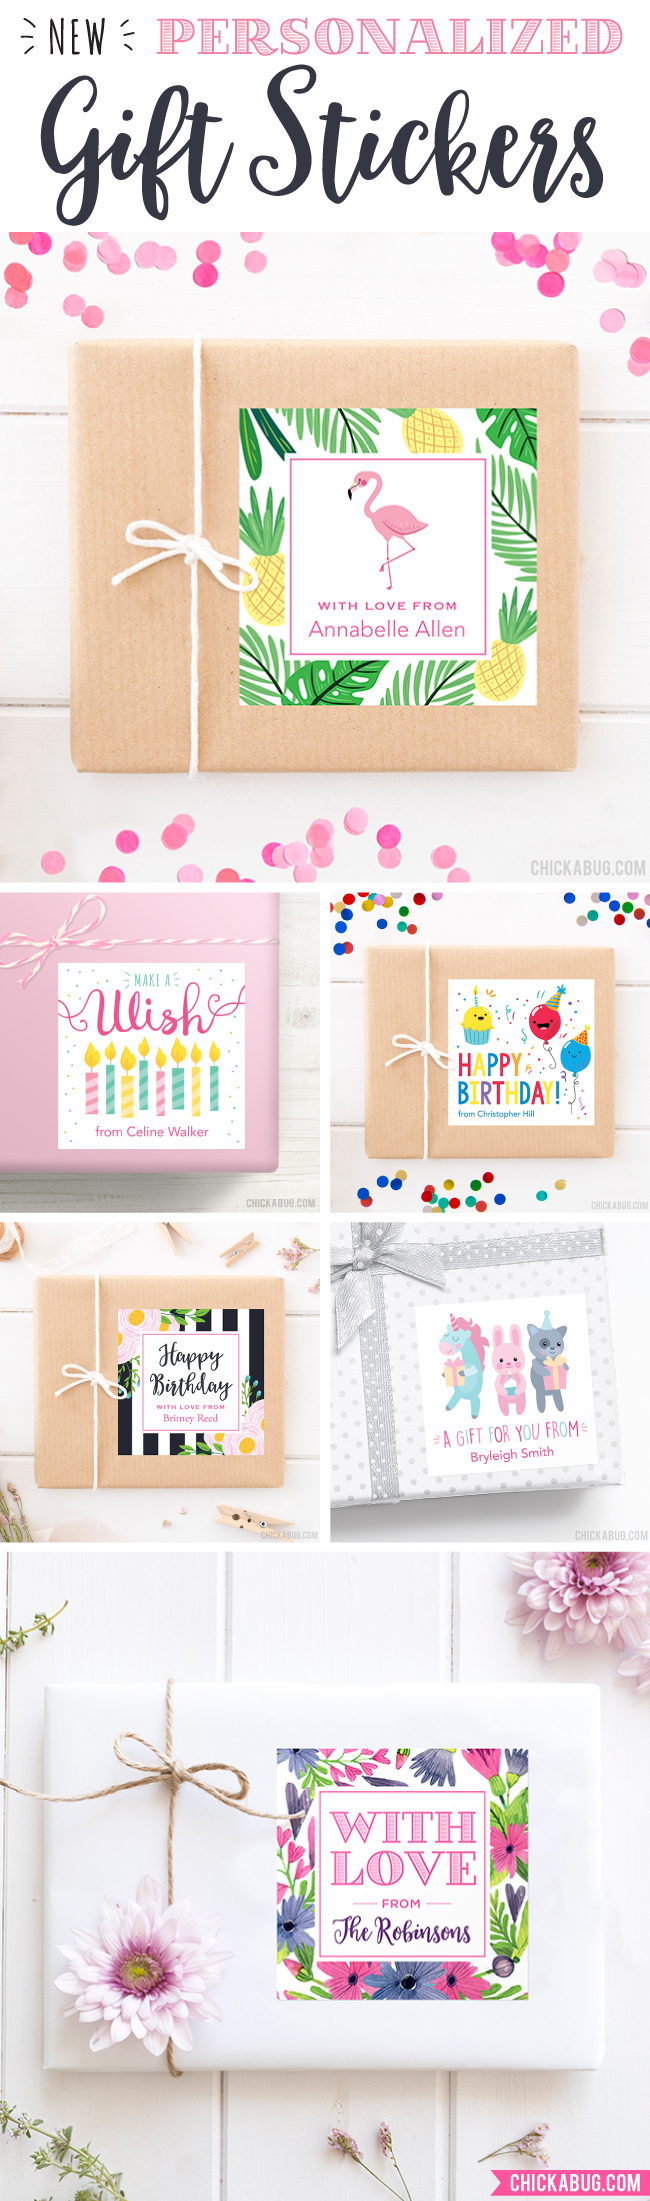 Gift stickers from Chickabug - make your gifts personalized and pretty!